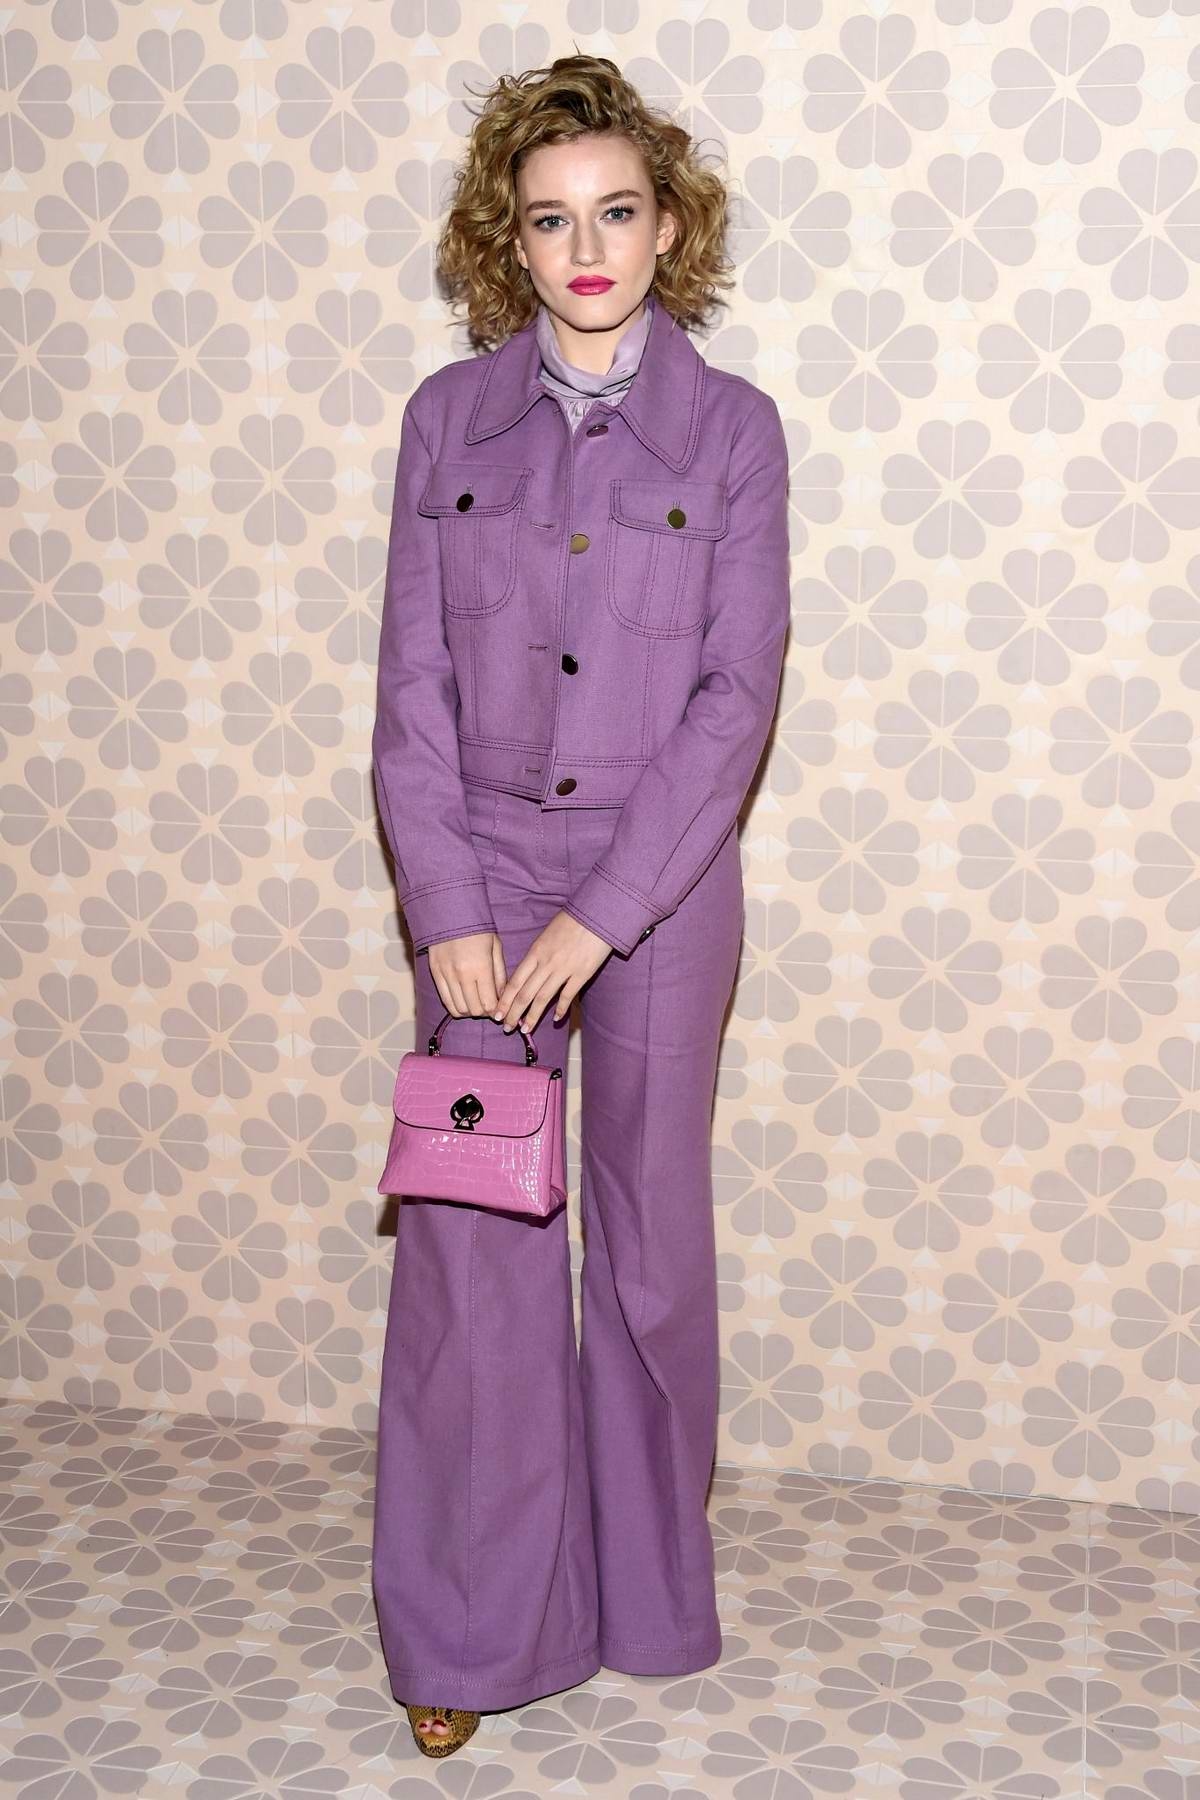 Julia Garner attends Kate Spade Fall/Winter 2019 Fashion Show during New York Fashion Week at Cipriani 25 Broadway in New York City